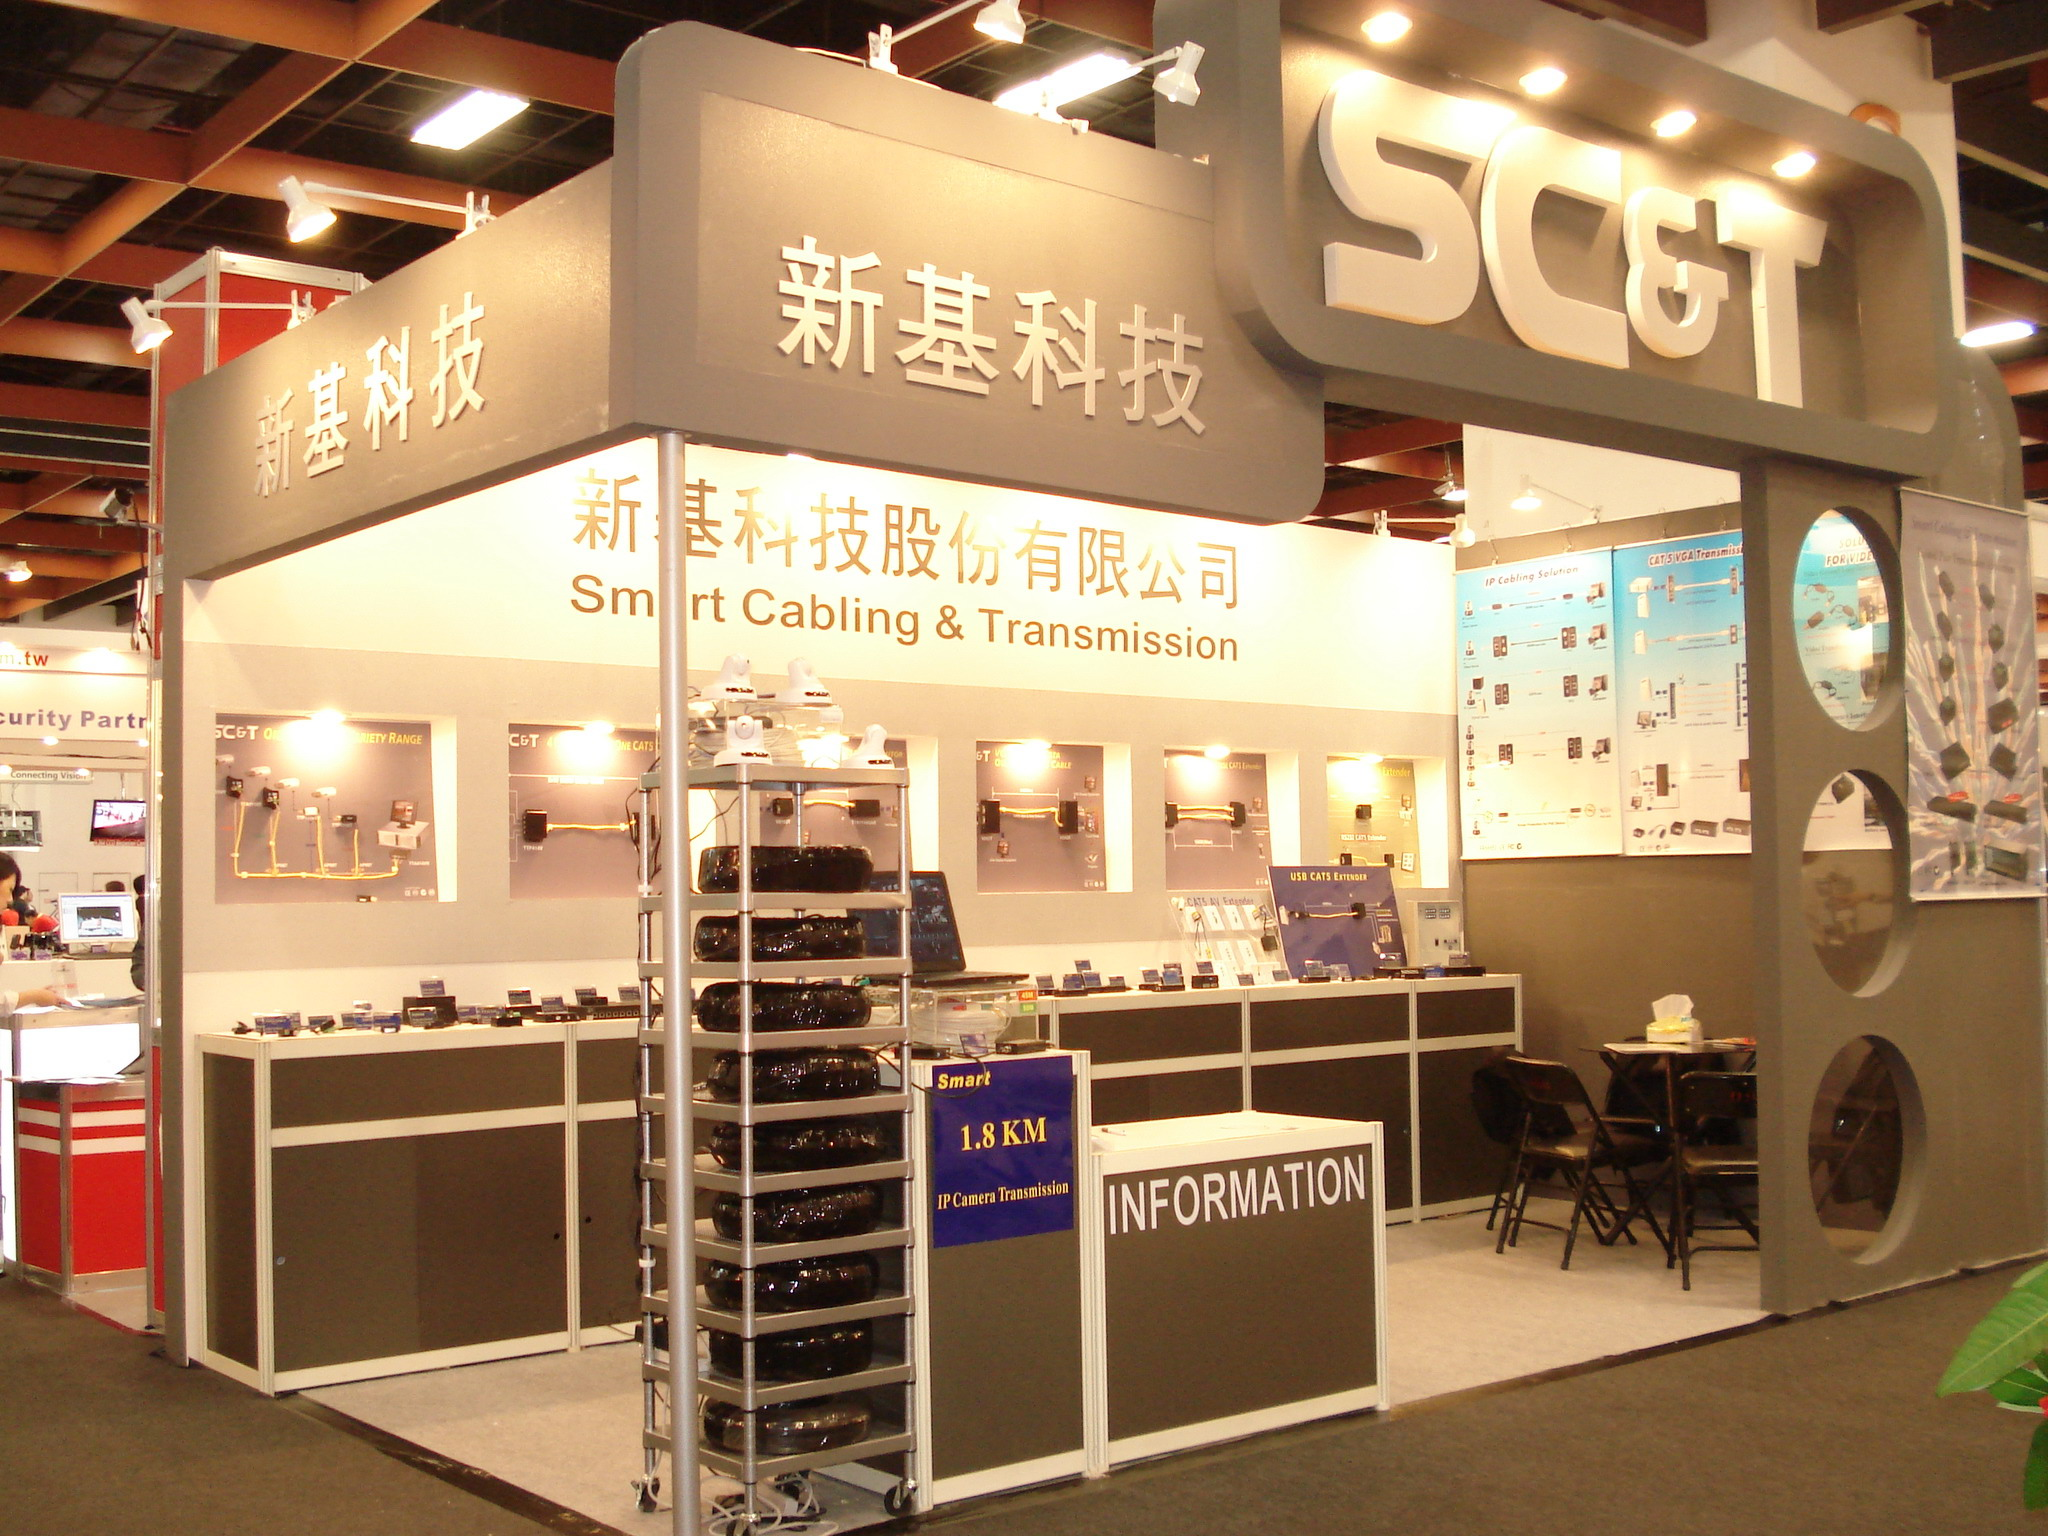 Index of /mirrors/SC&T/SC&T Trade show picture